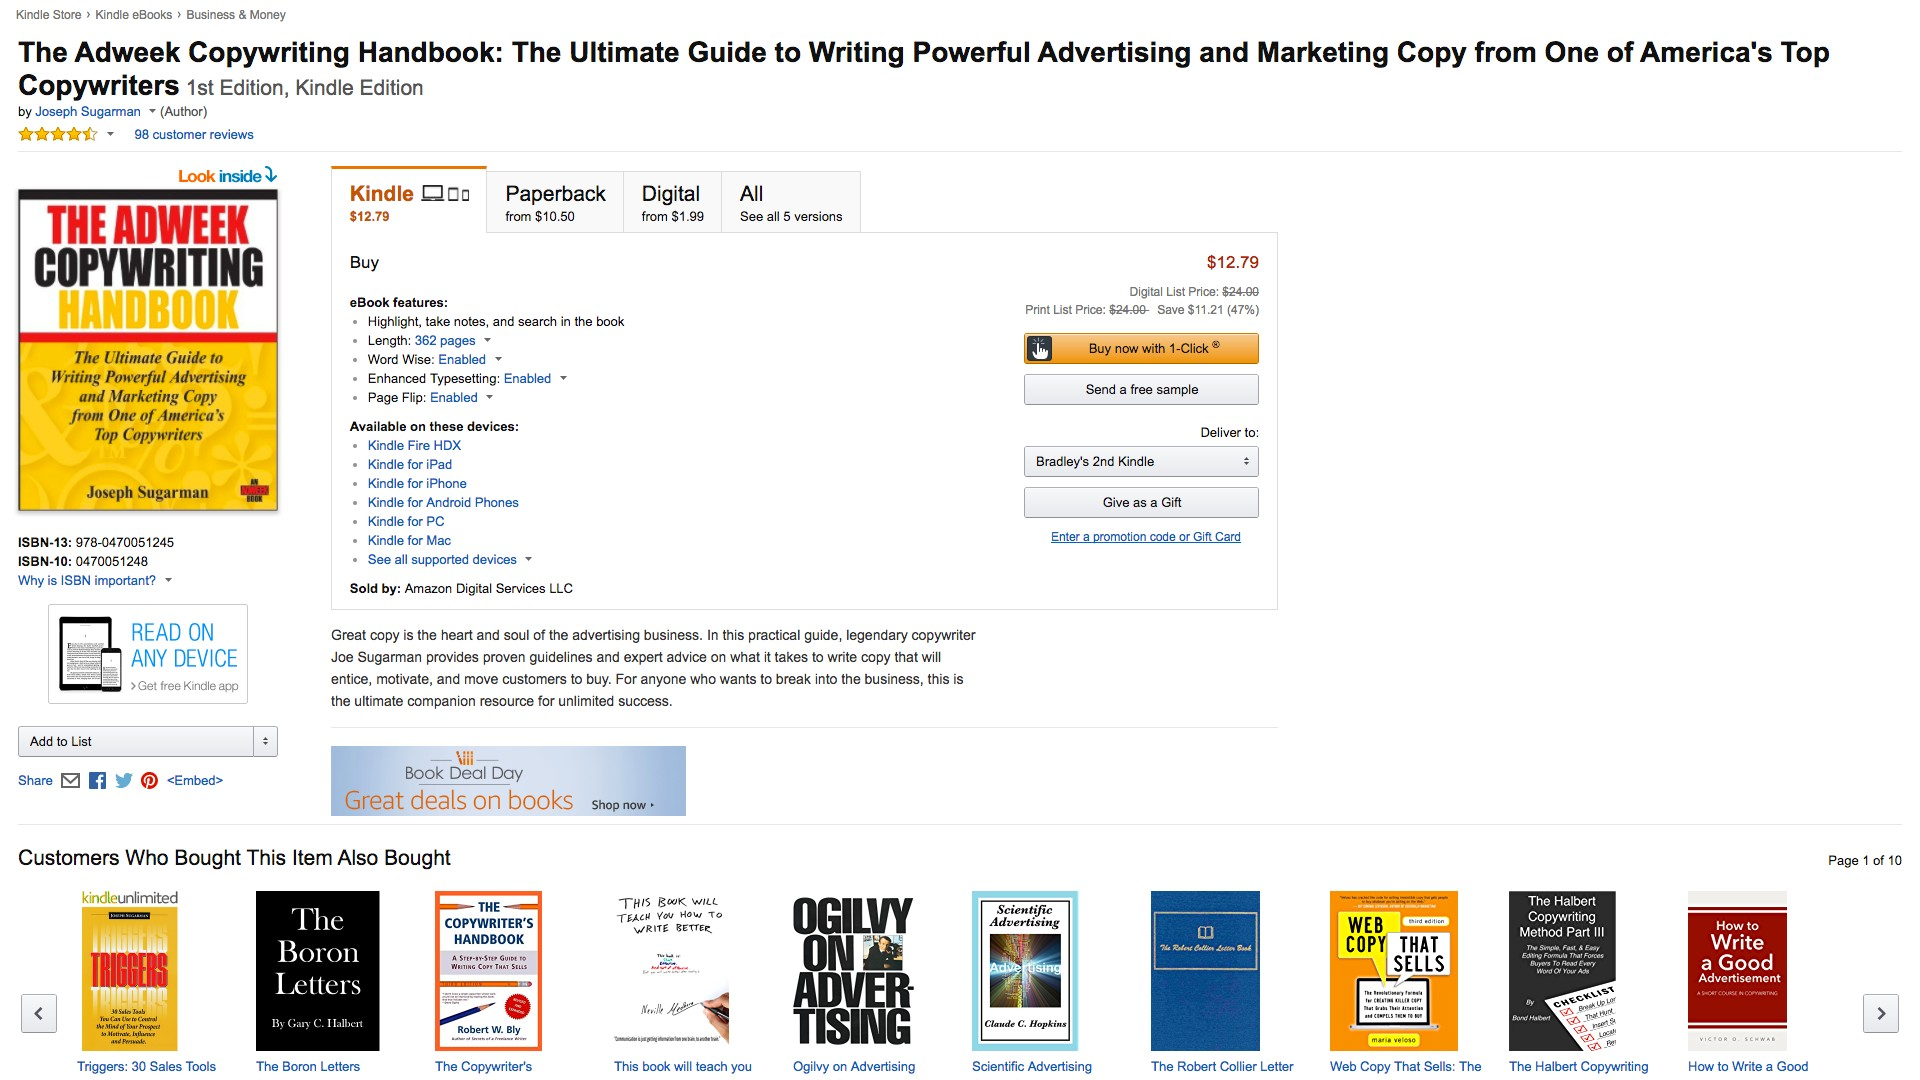 1 The Adweek Copywriting Handbook